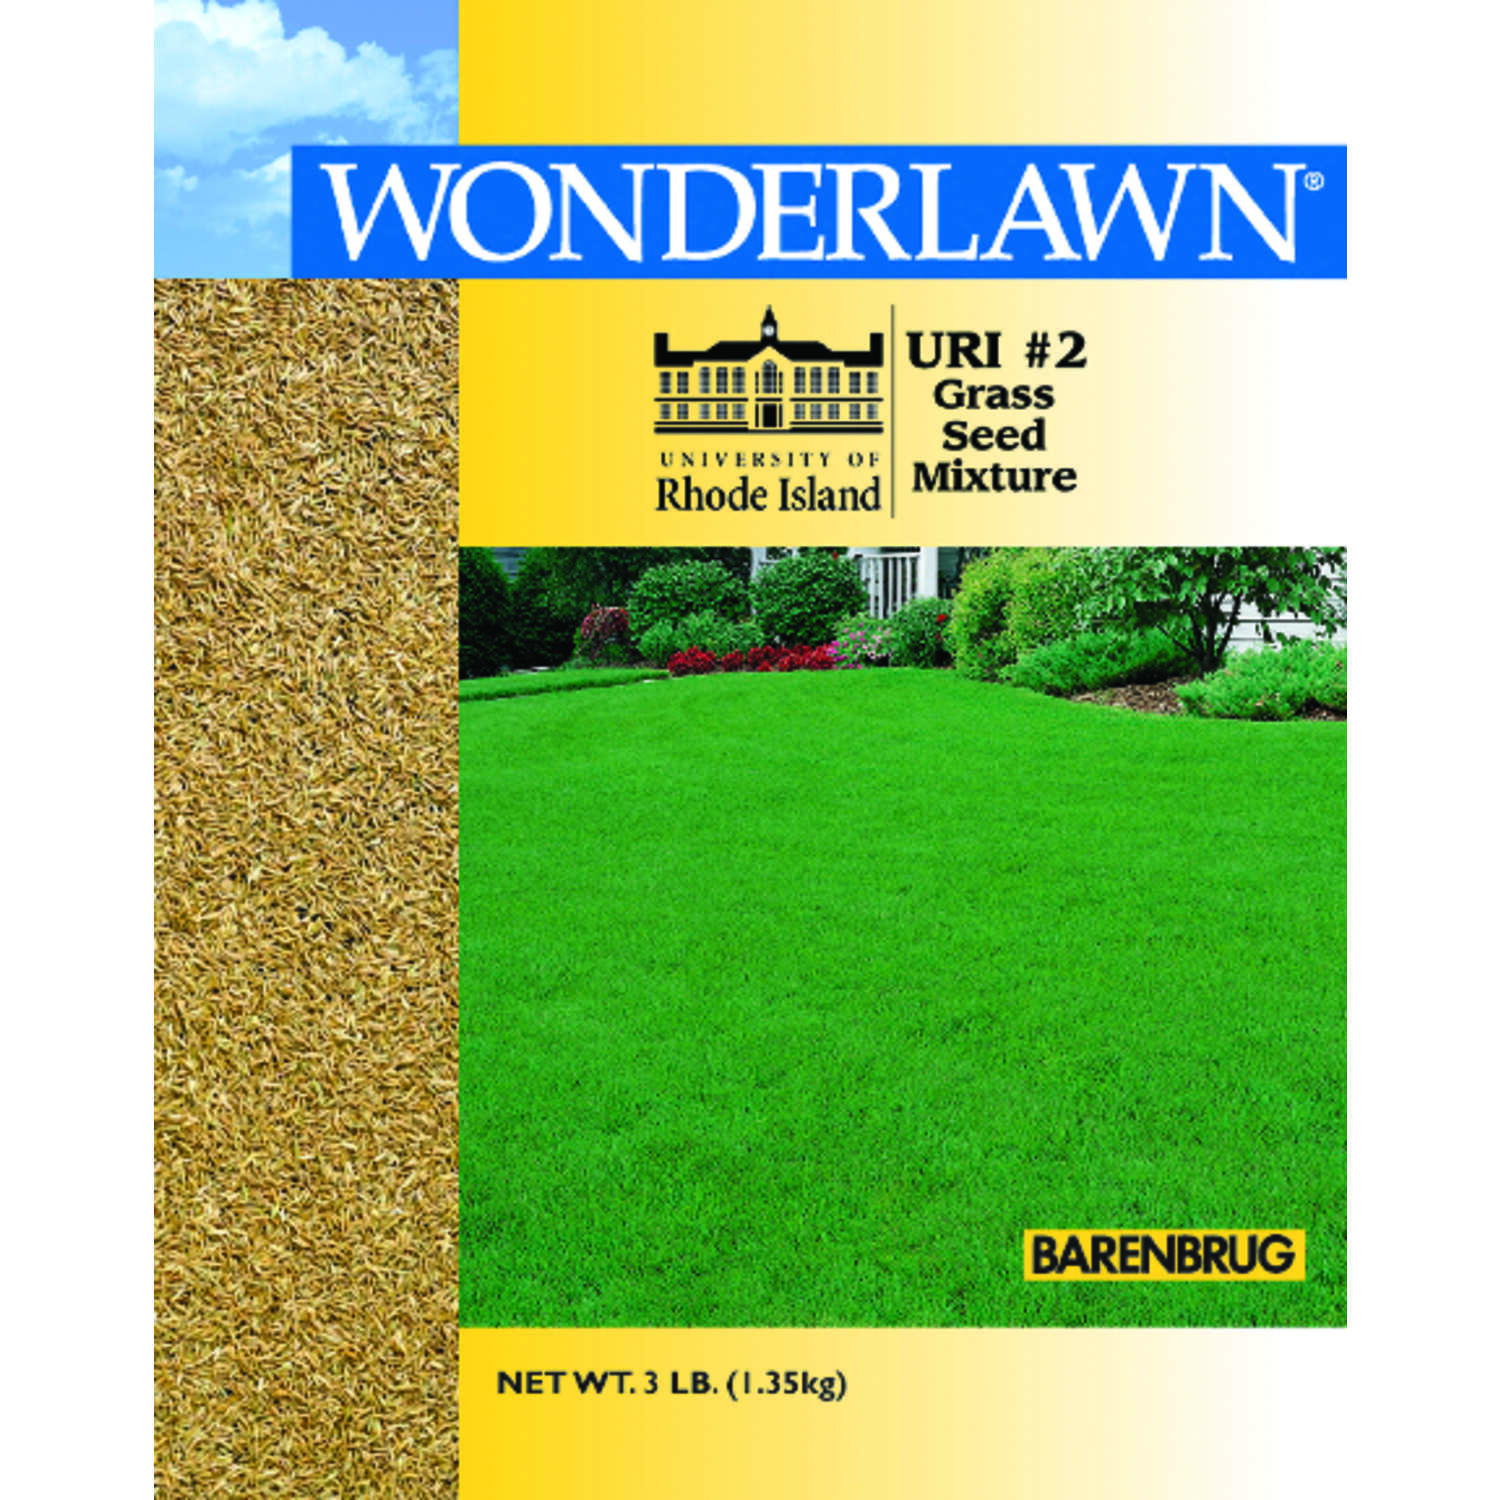 Barenbrug Wonderlawn Rhode Island Full Sun/Light Shade Lawn Seed Mixture 3 lb.